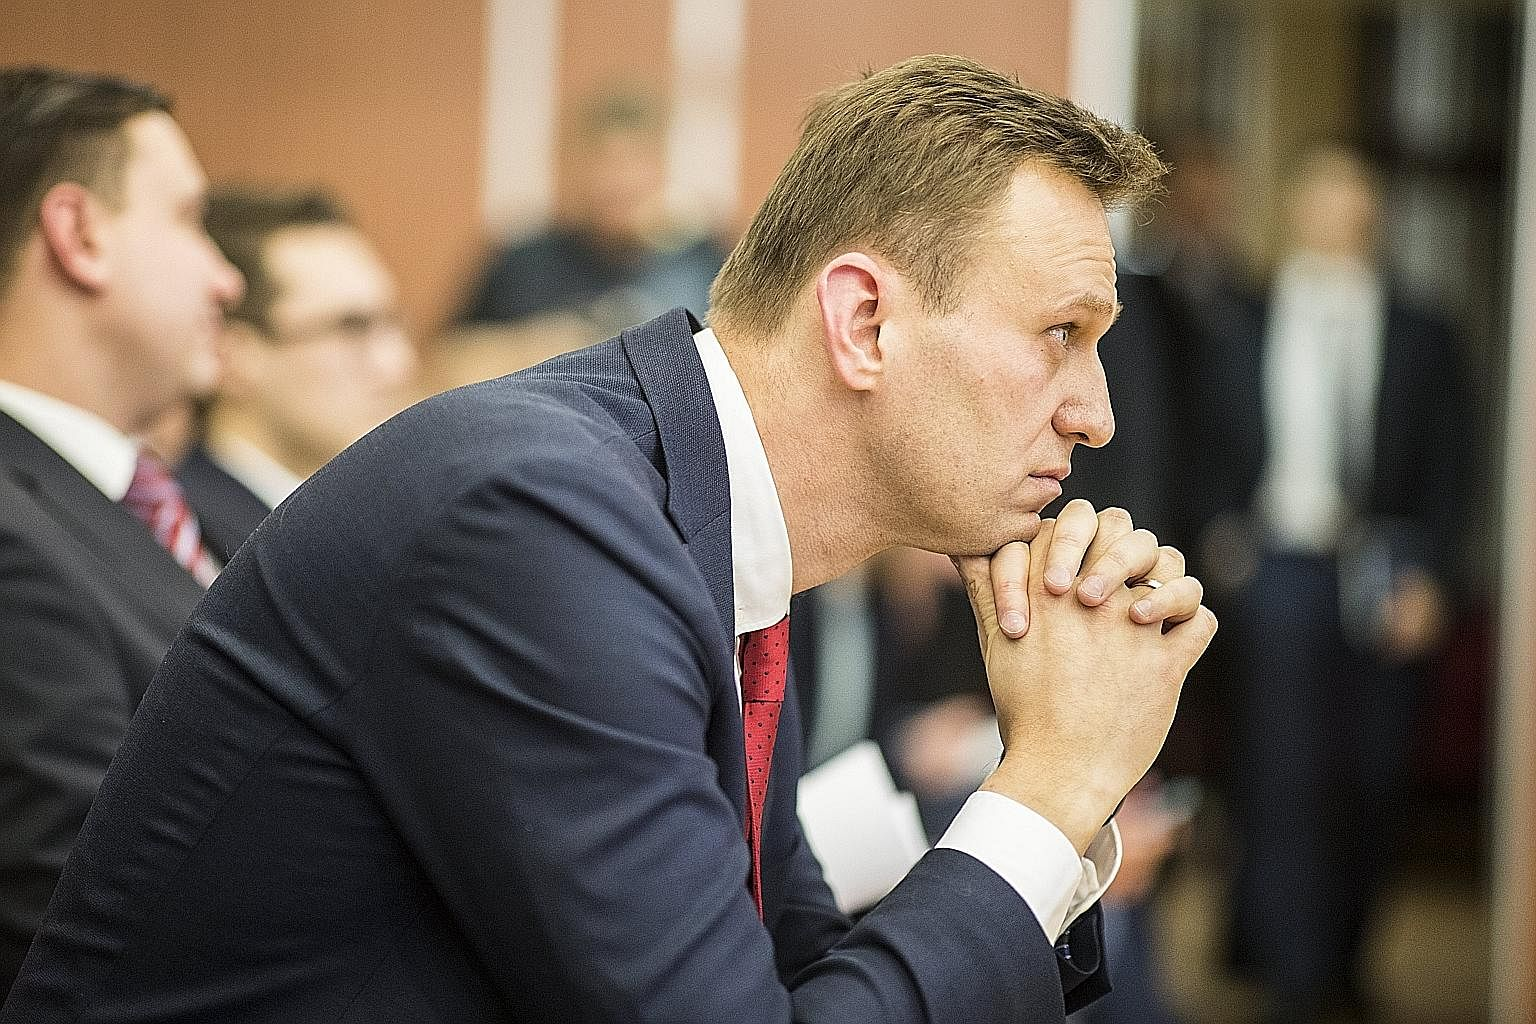 Opposition leader Alexei Navalny at the Russian Central Election Commission in Moscow on Monday, when he was found ineligible to be a presidential candidate next year because of a suspended prison sentence.